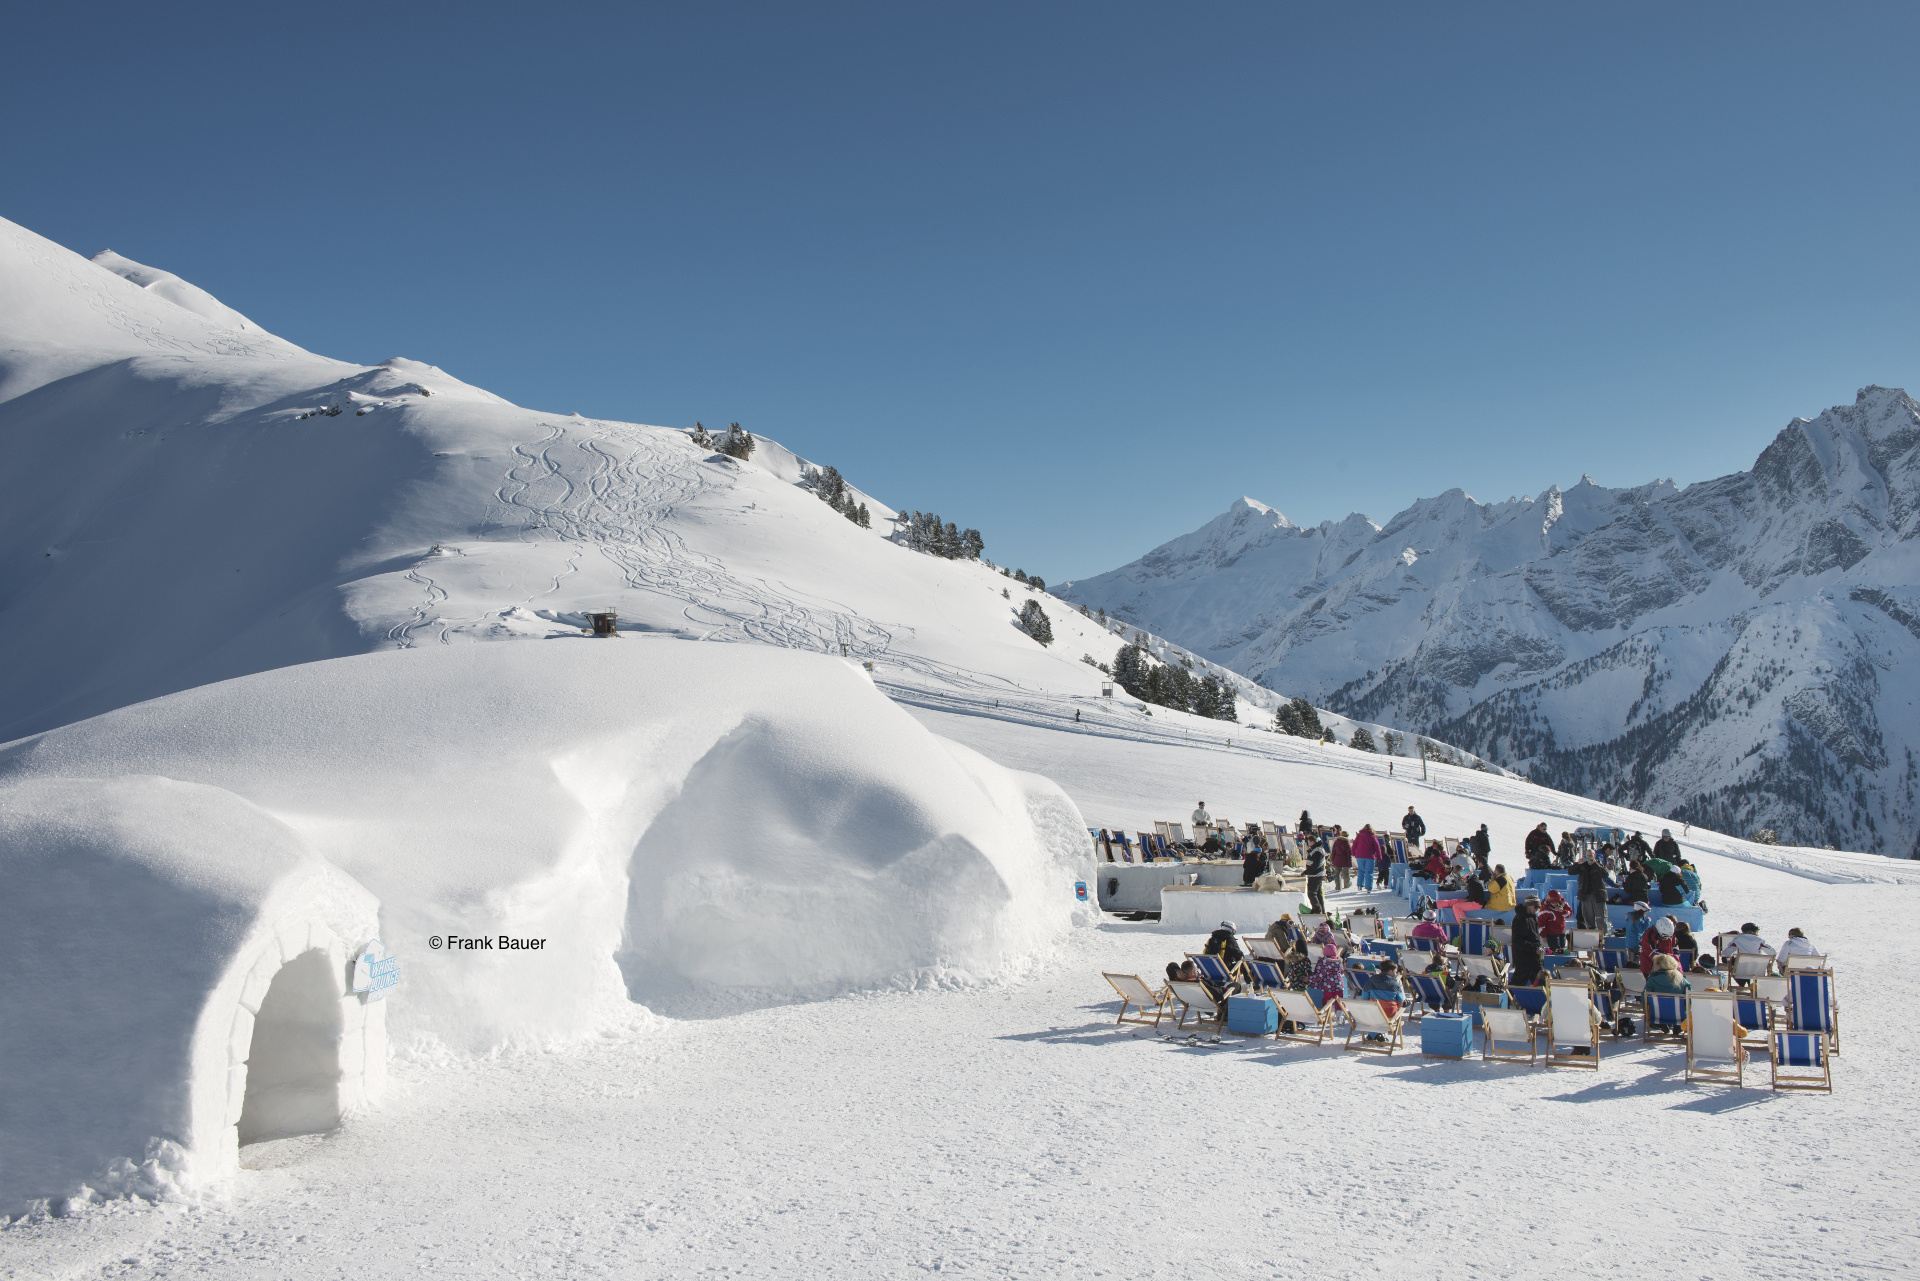 Winter photo from Mayrhofen, Tyrol